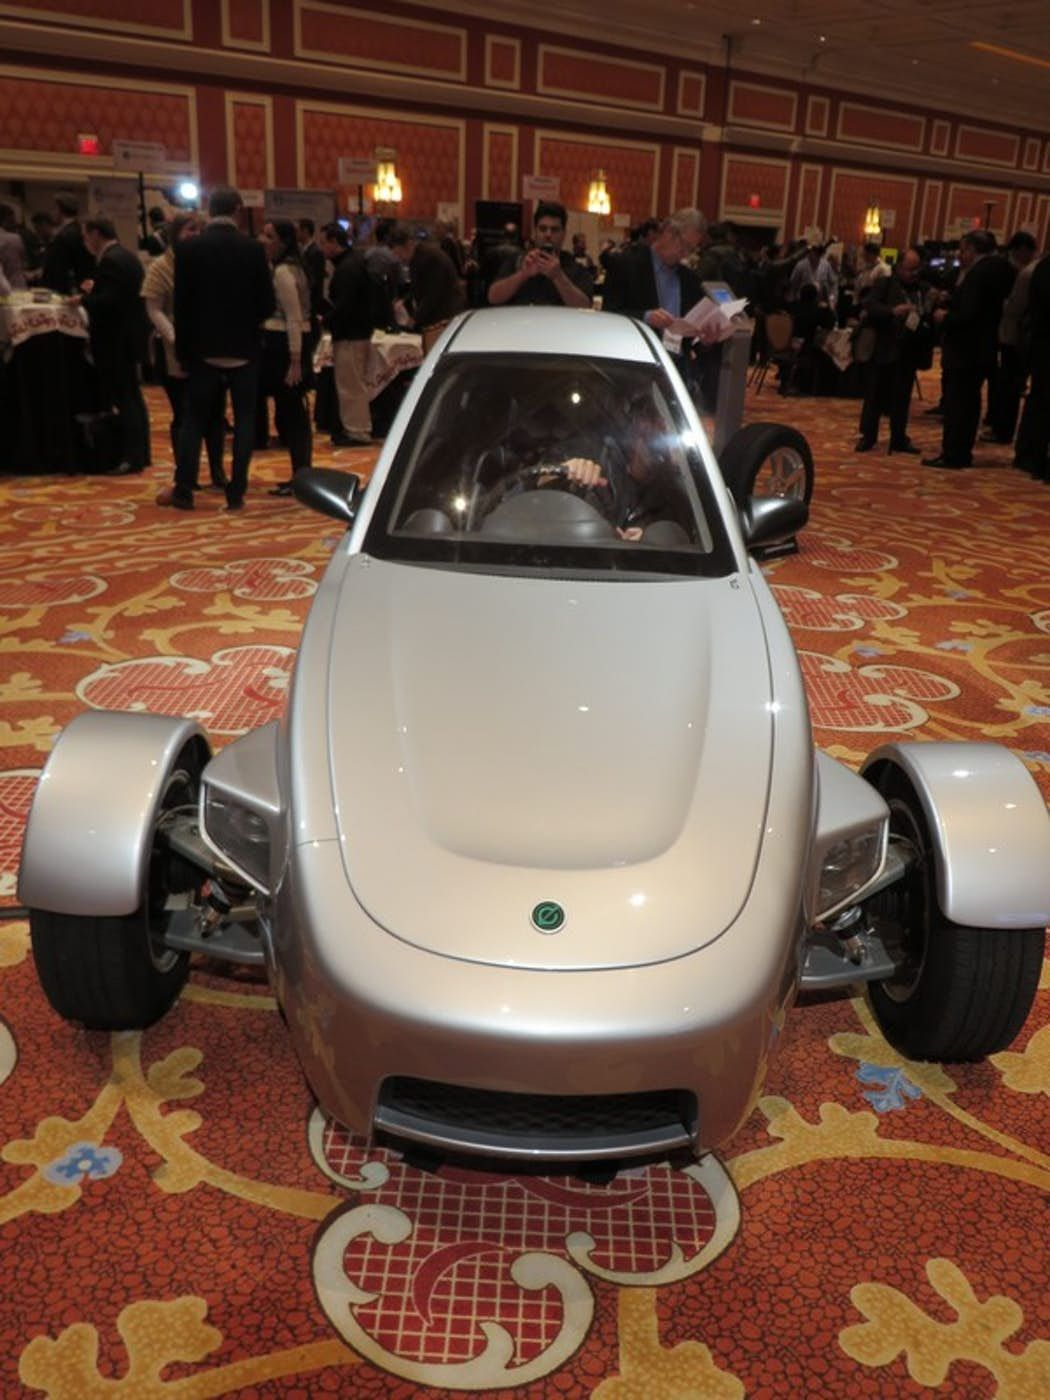 7,000 84mpg Elio car moves forward with new production